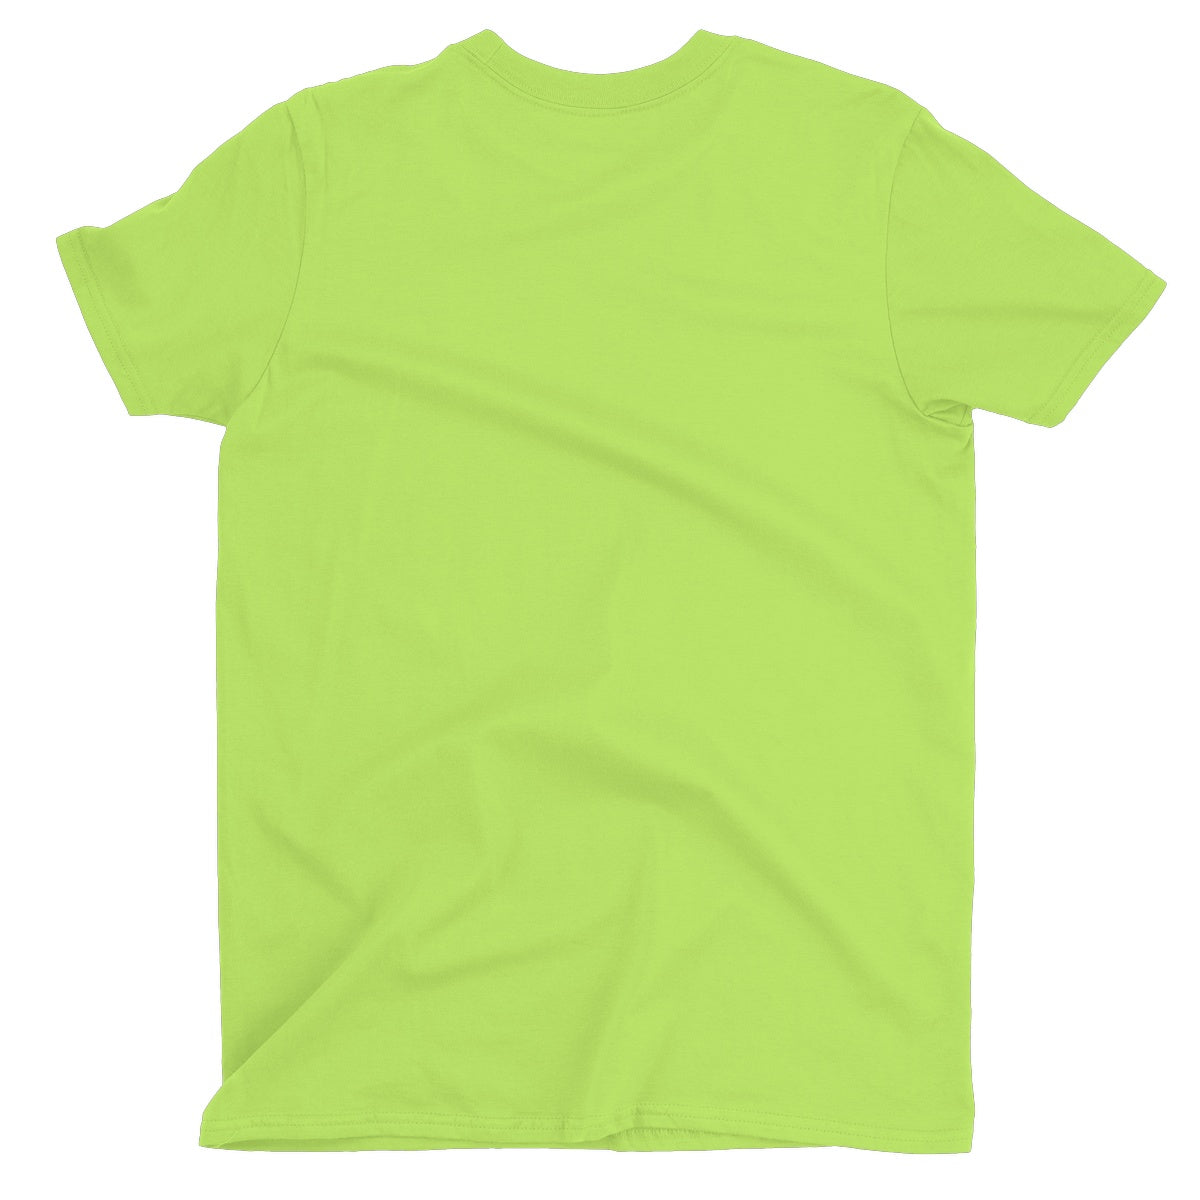 The Cafe Unisex Neon T-Shirt